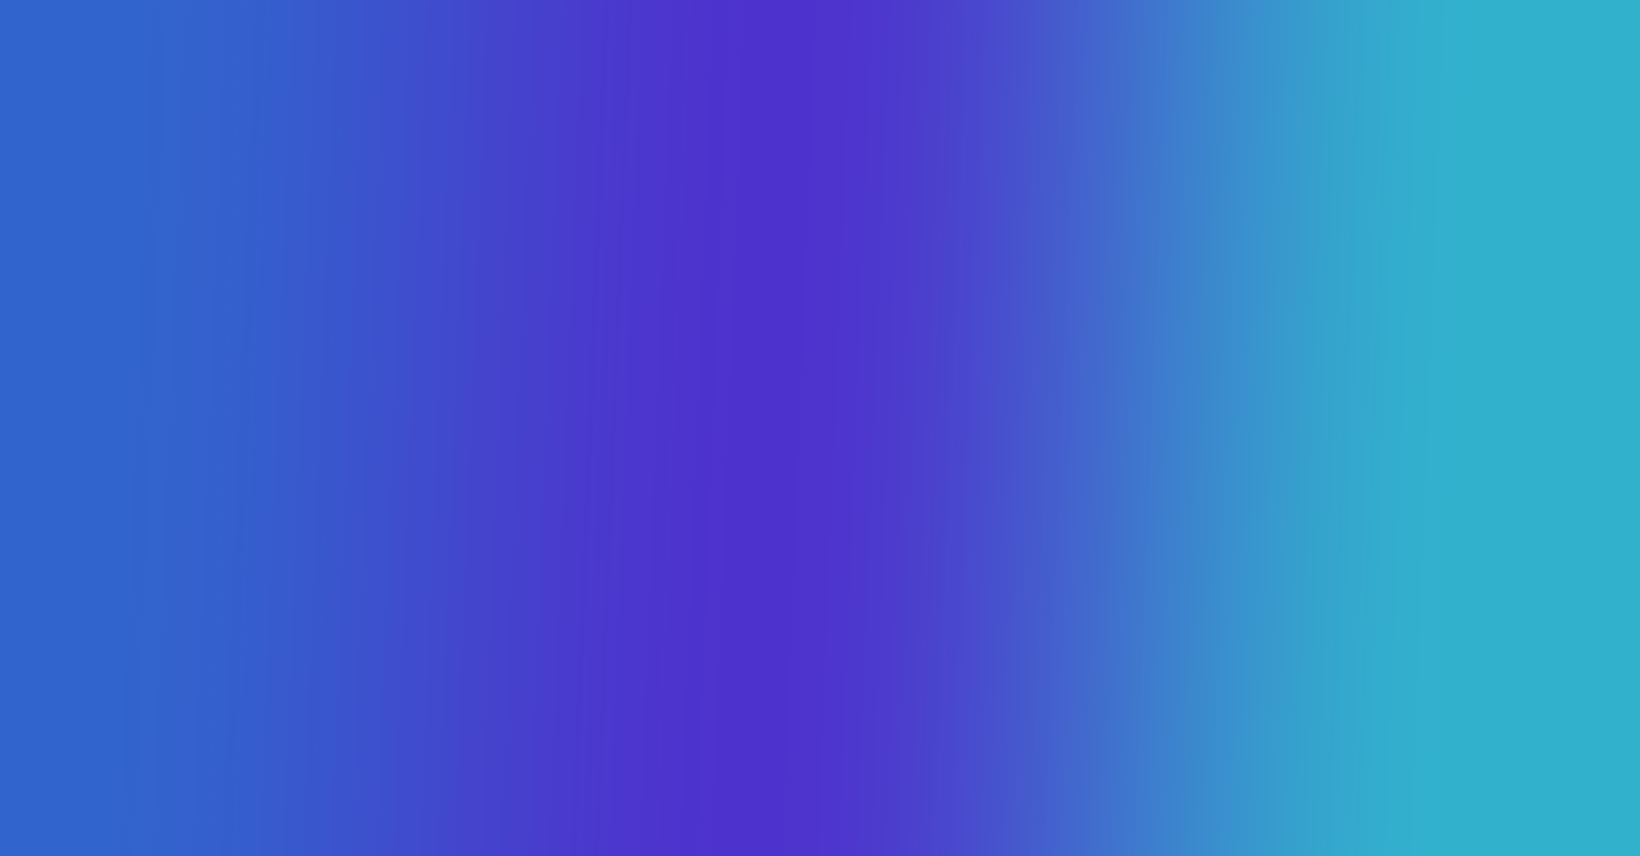 Image showing why analogous colors work for gradients